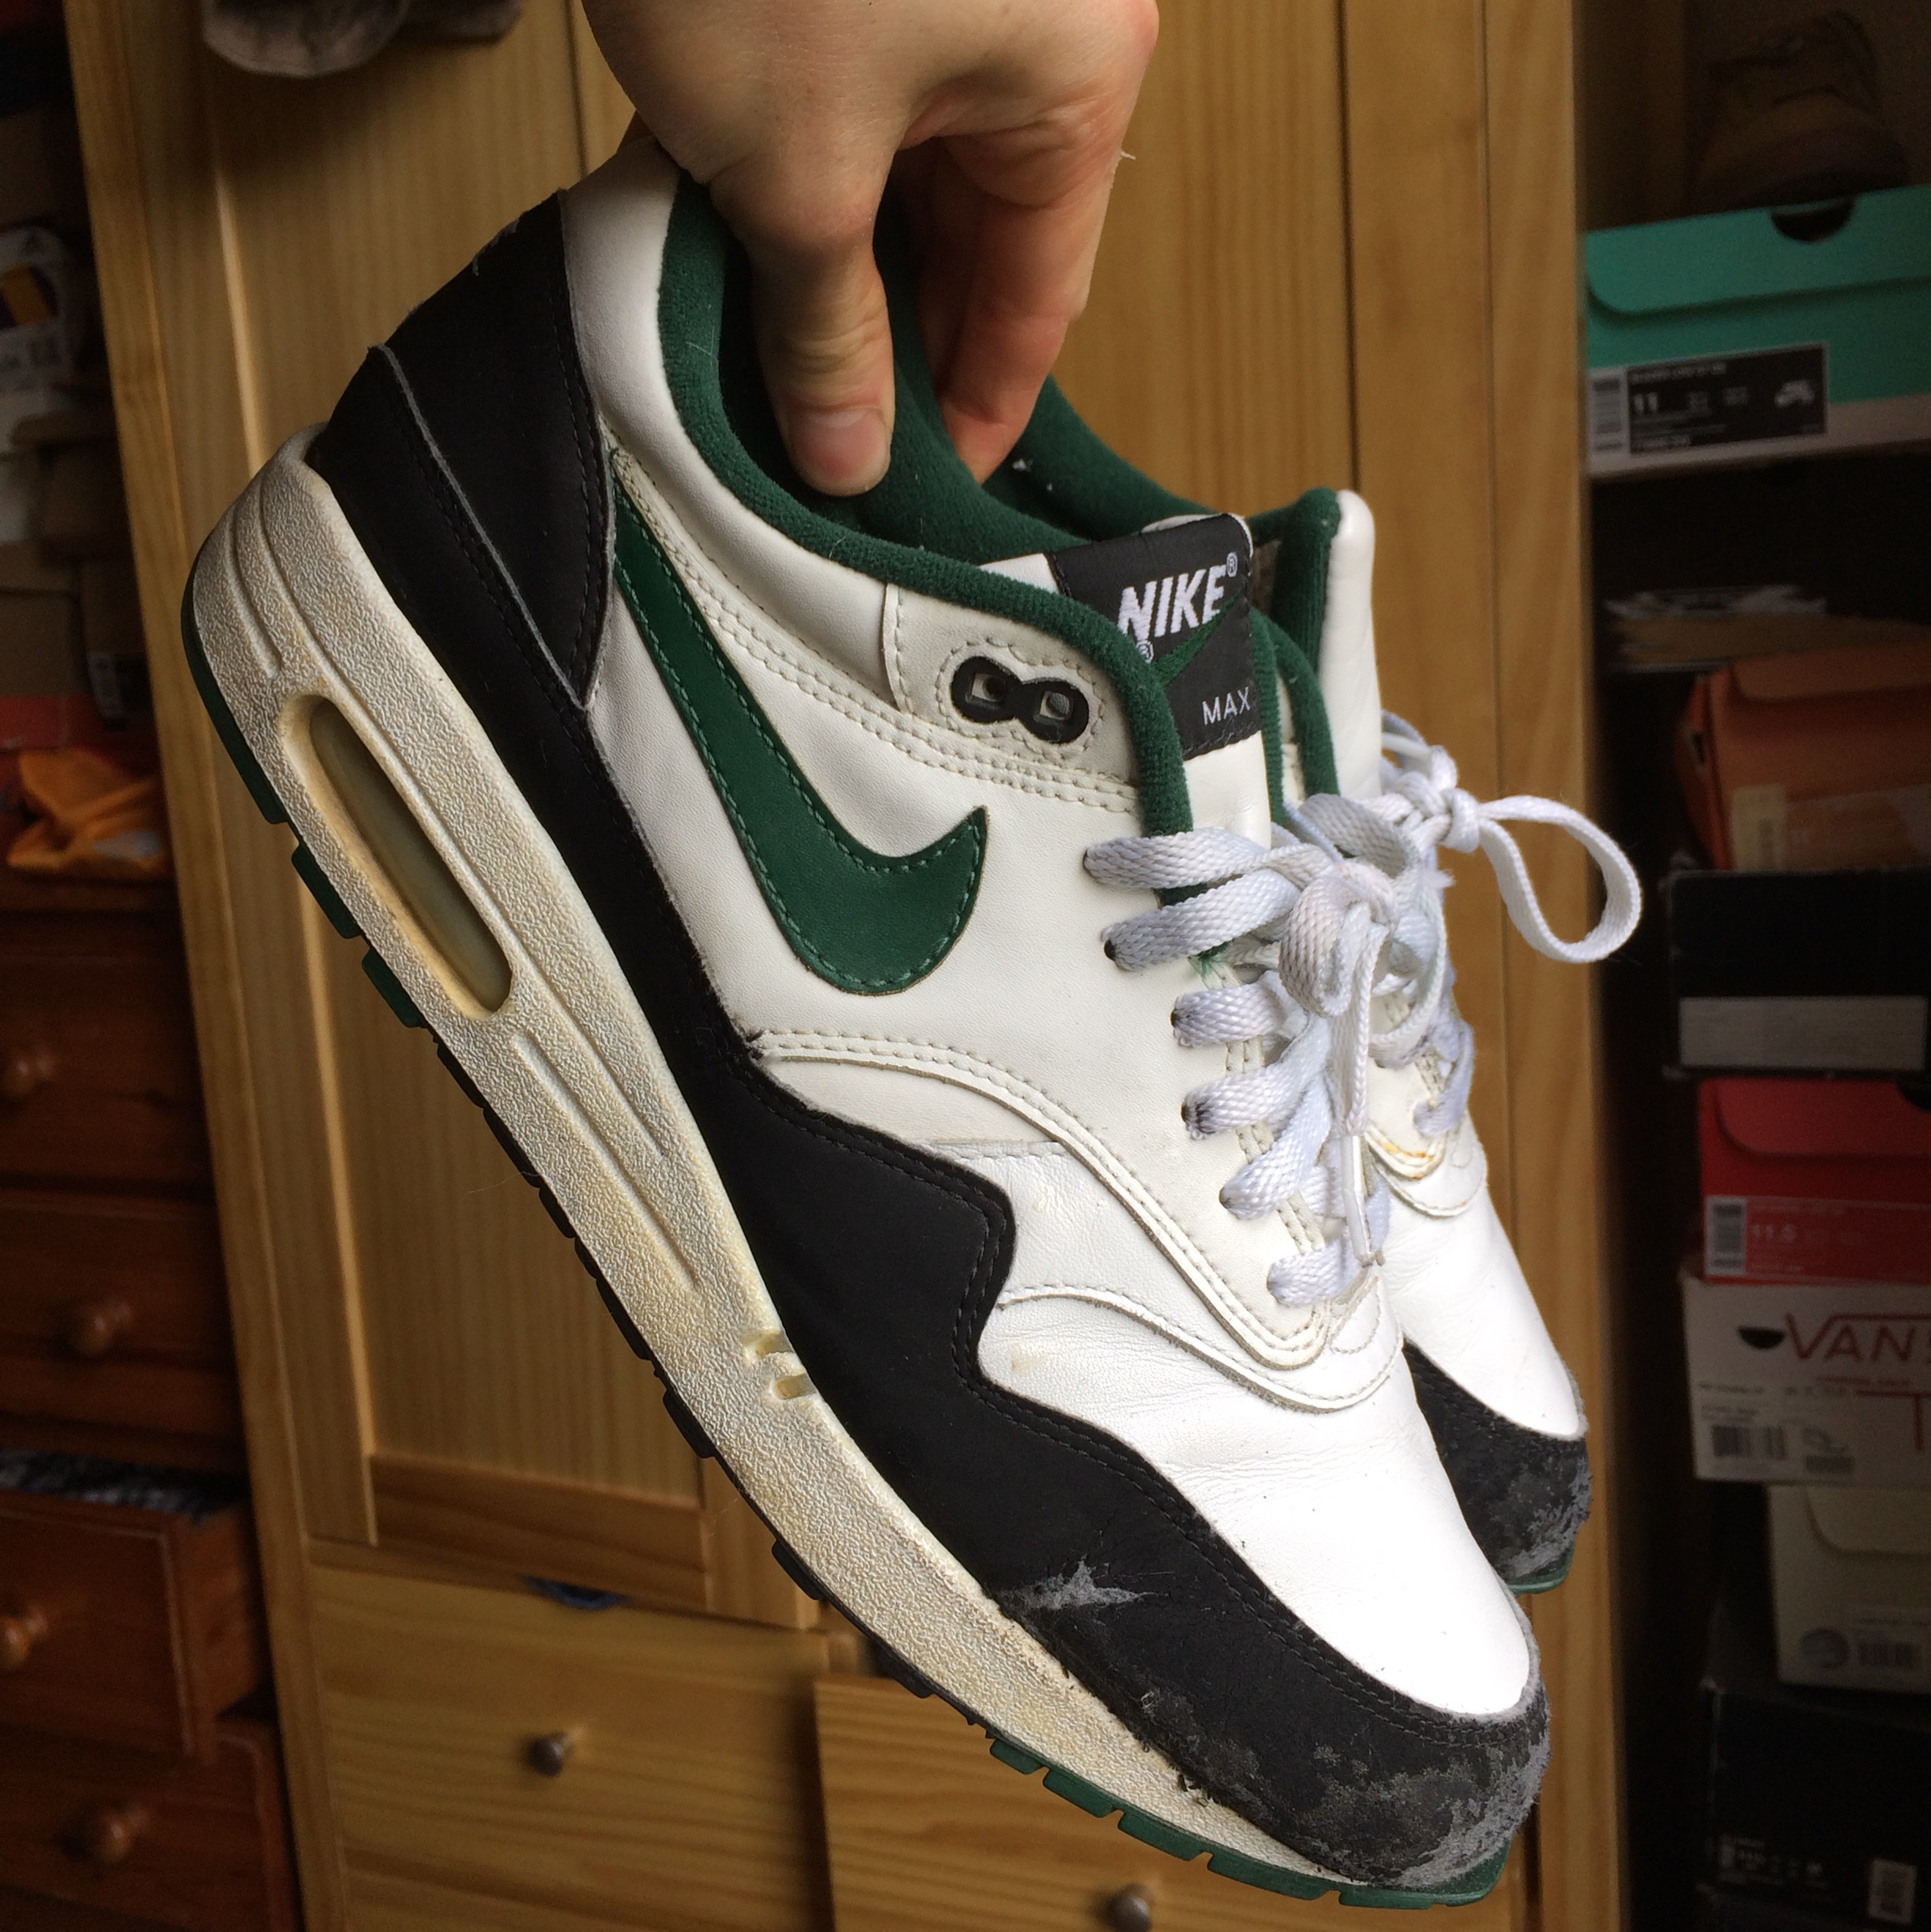 Forest Rare Nike Very From 1 Air Depop Max Green FcJ3T1lK